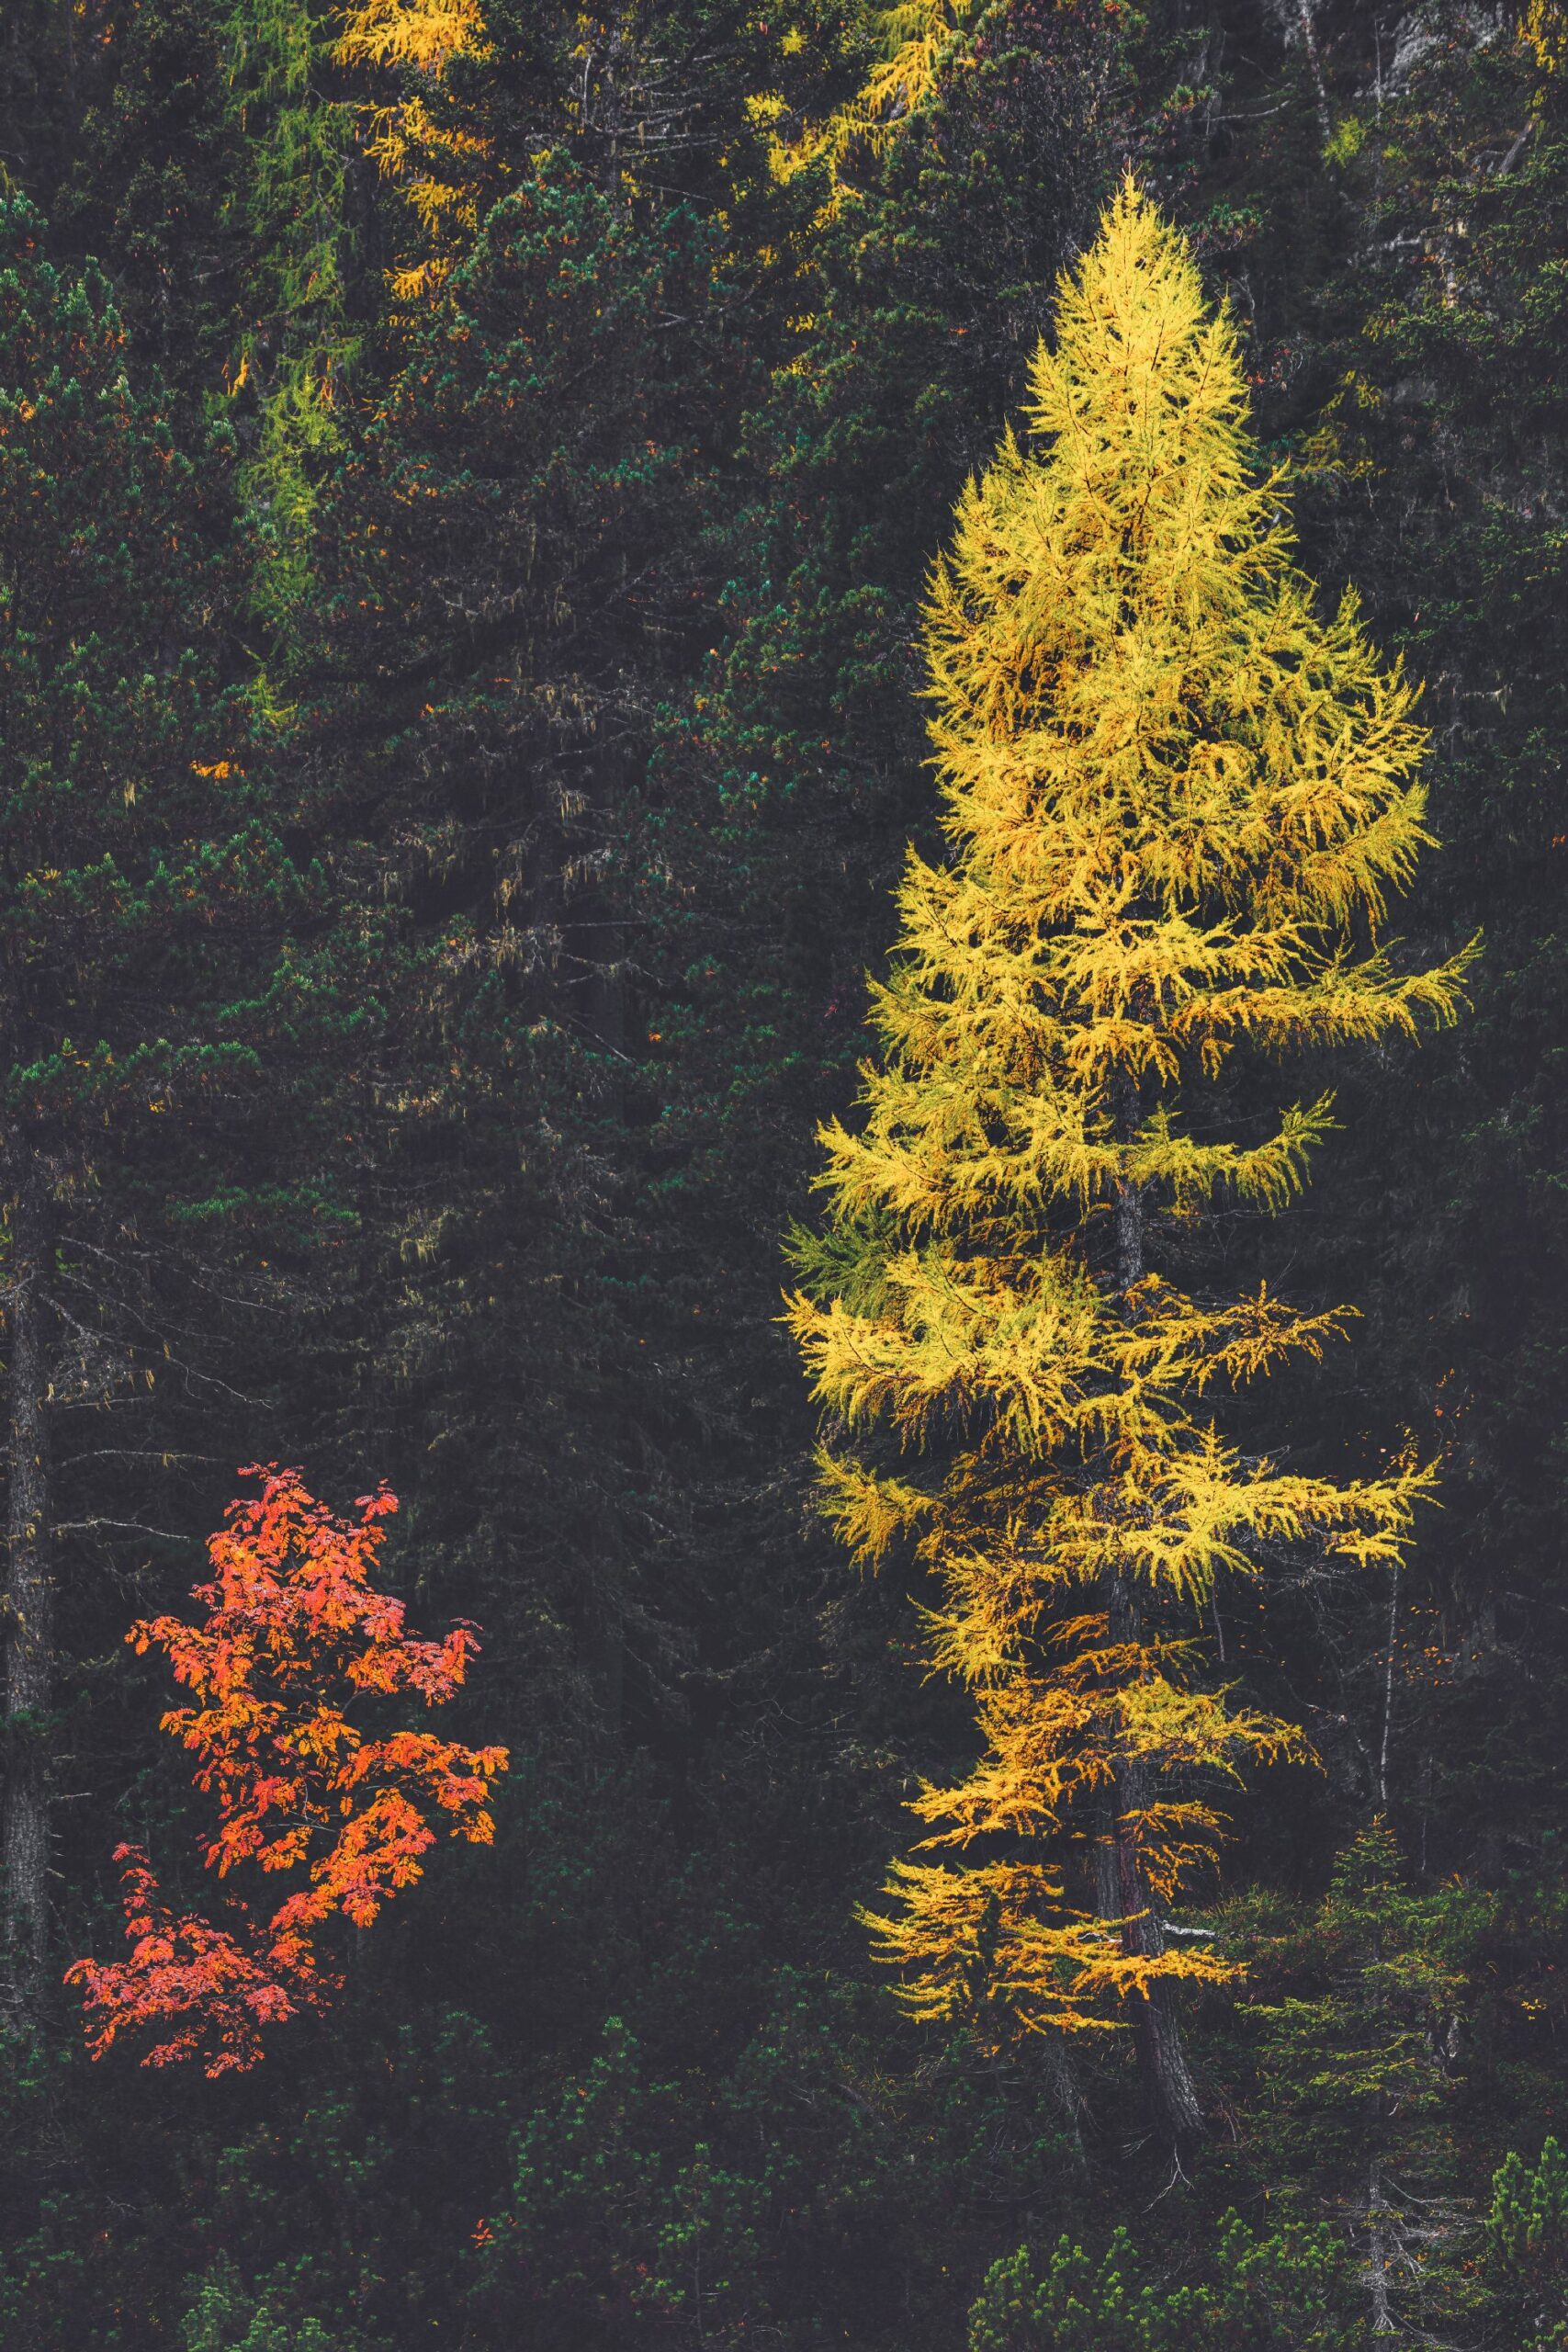 150344-spruce_fir_forests-plant-mixed_coniferous_forest-biome-vegetation